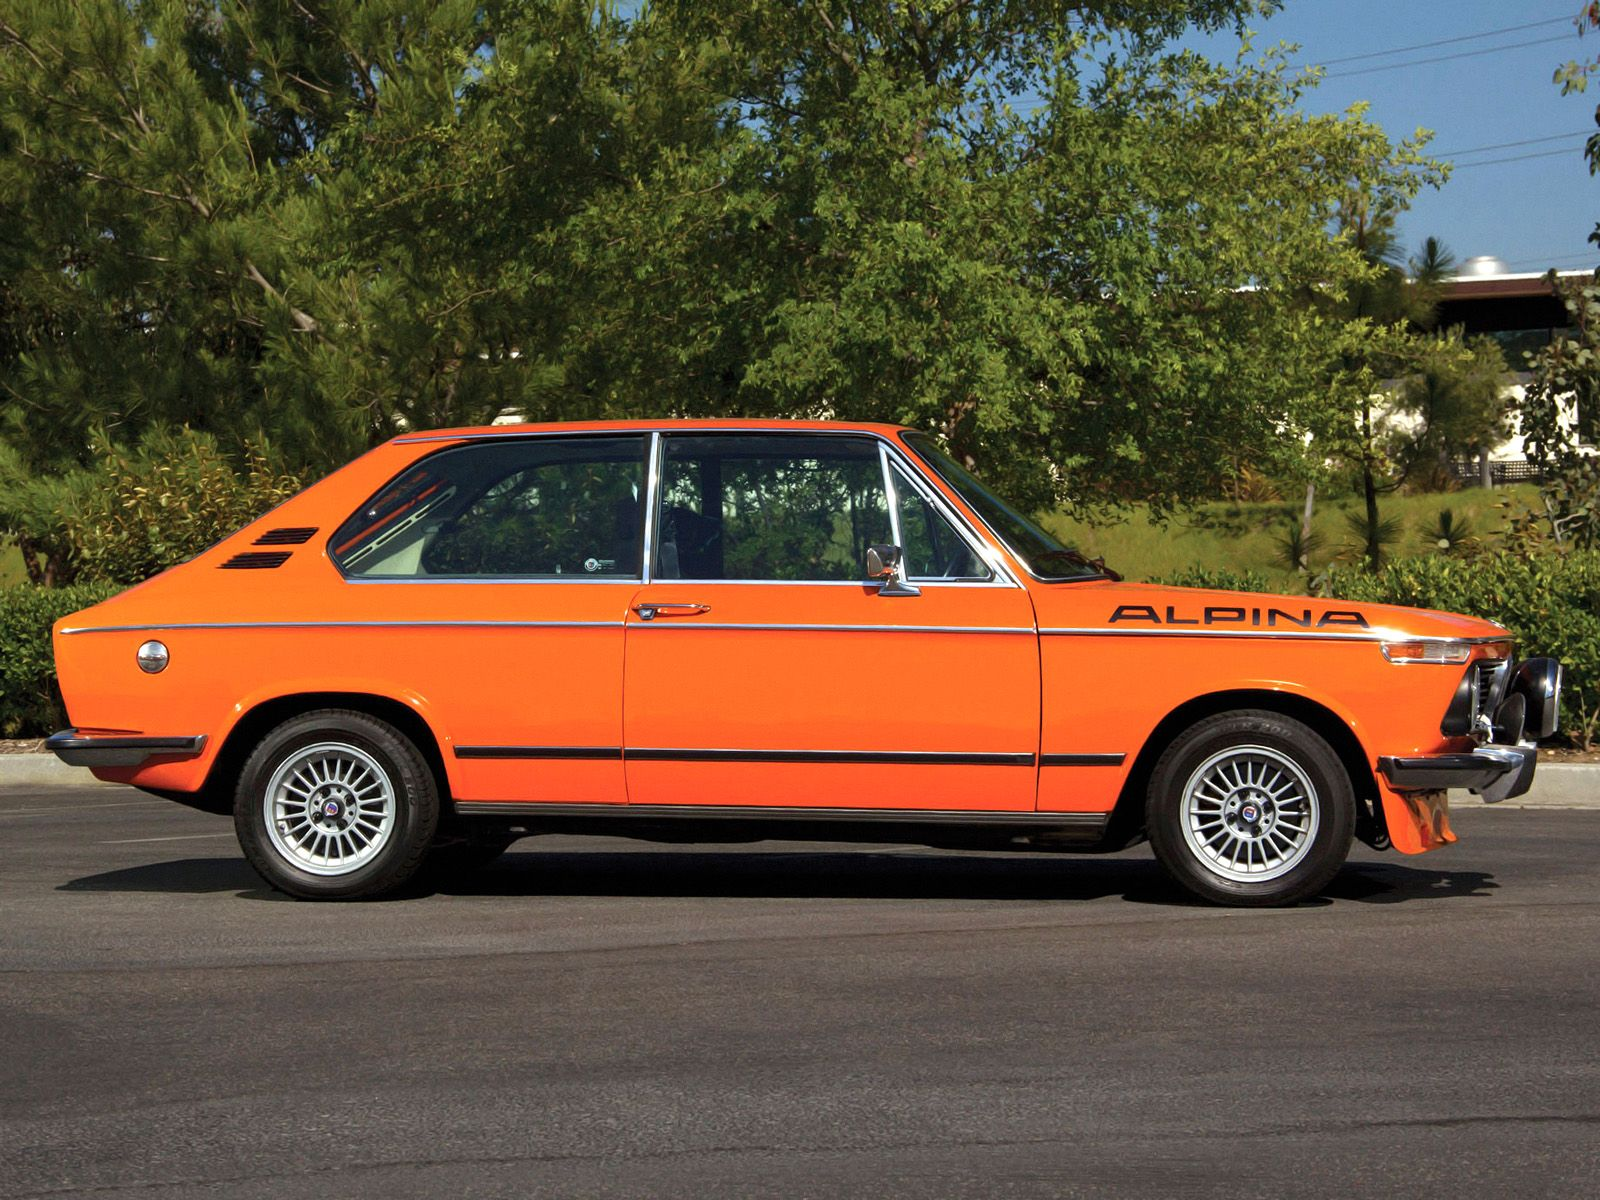 In summer of a very rare 1974 bmw 2002 tii touring alpina previously owned by paul walker went up for sale